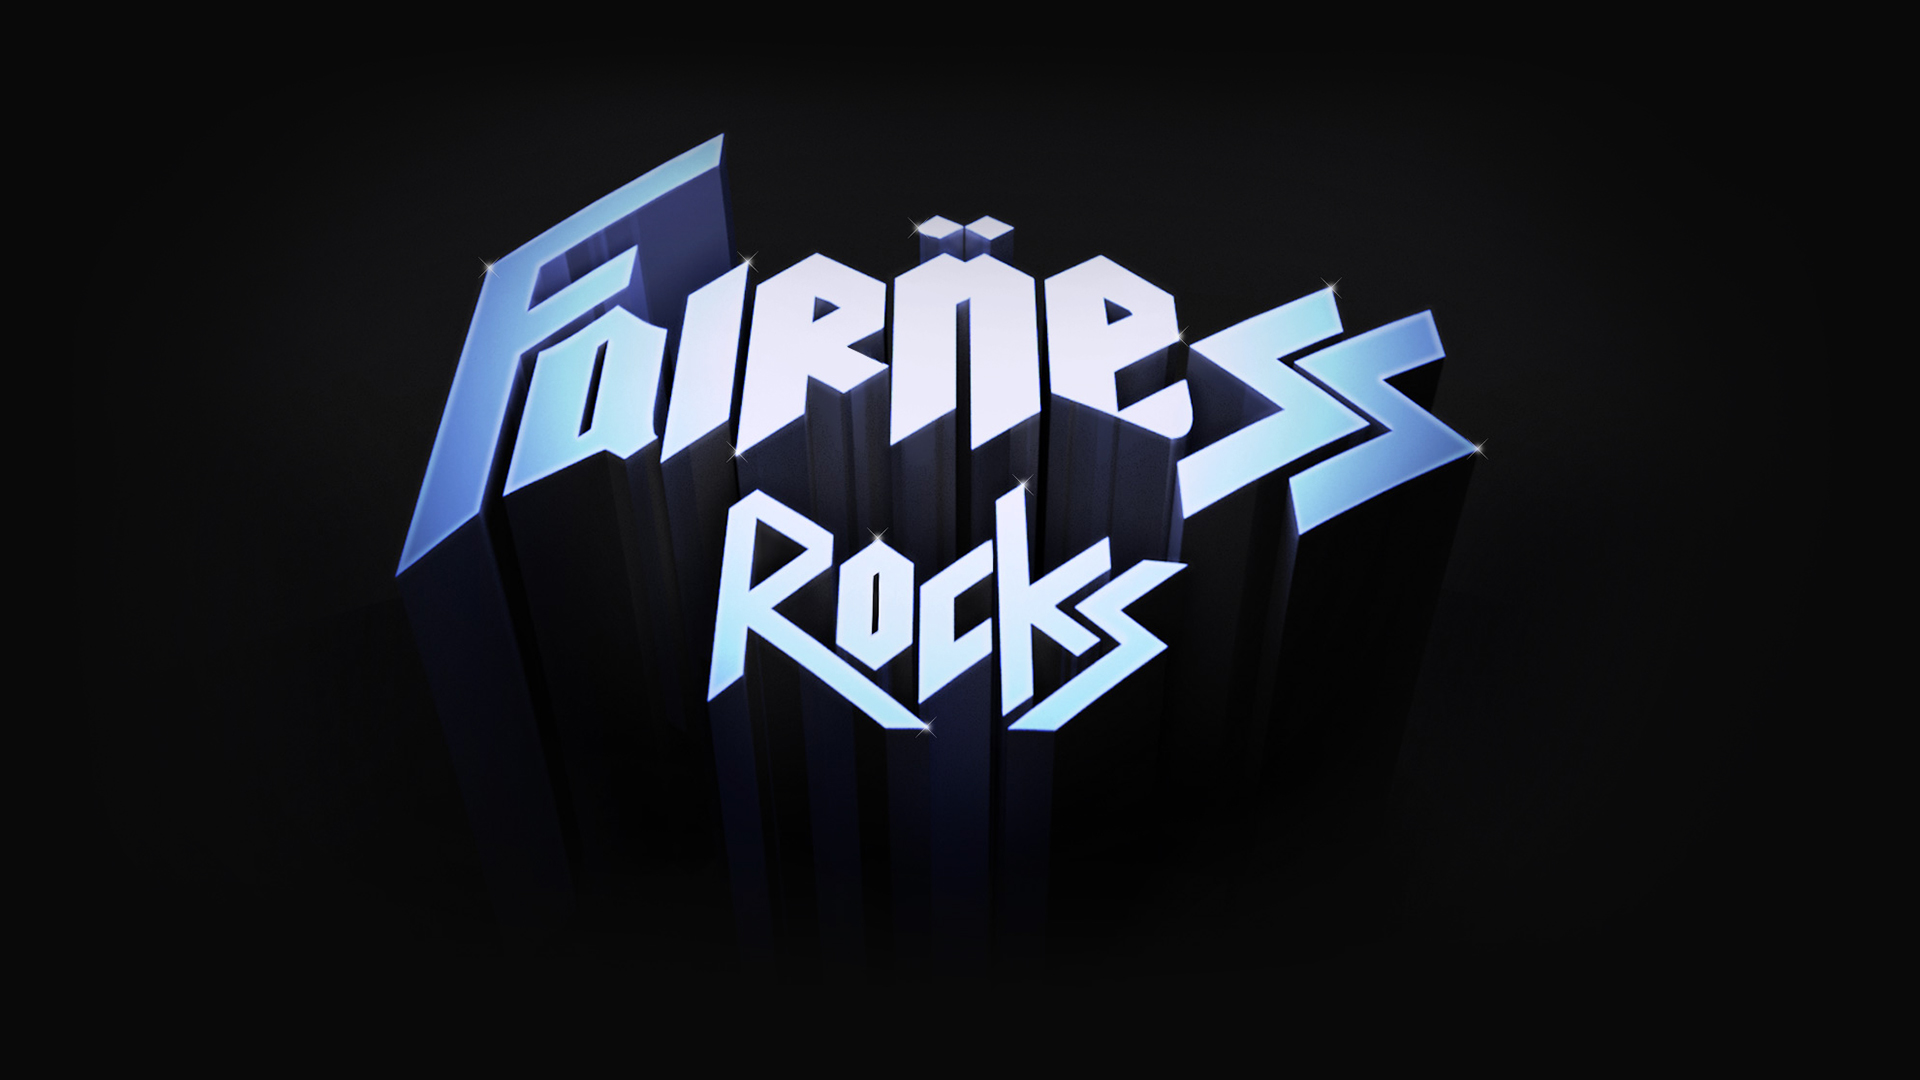 Fairness Rocks News Key Vote for the Talent tomorrow at EU Parliament